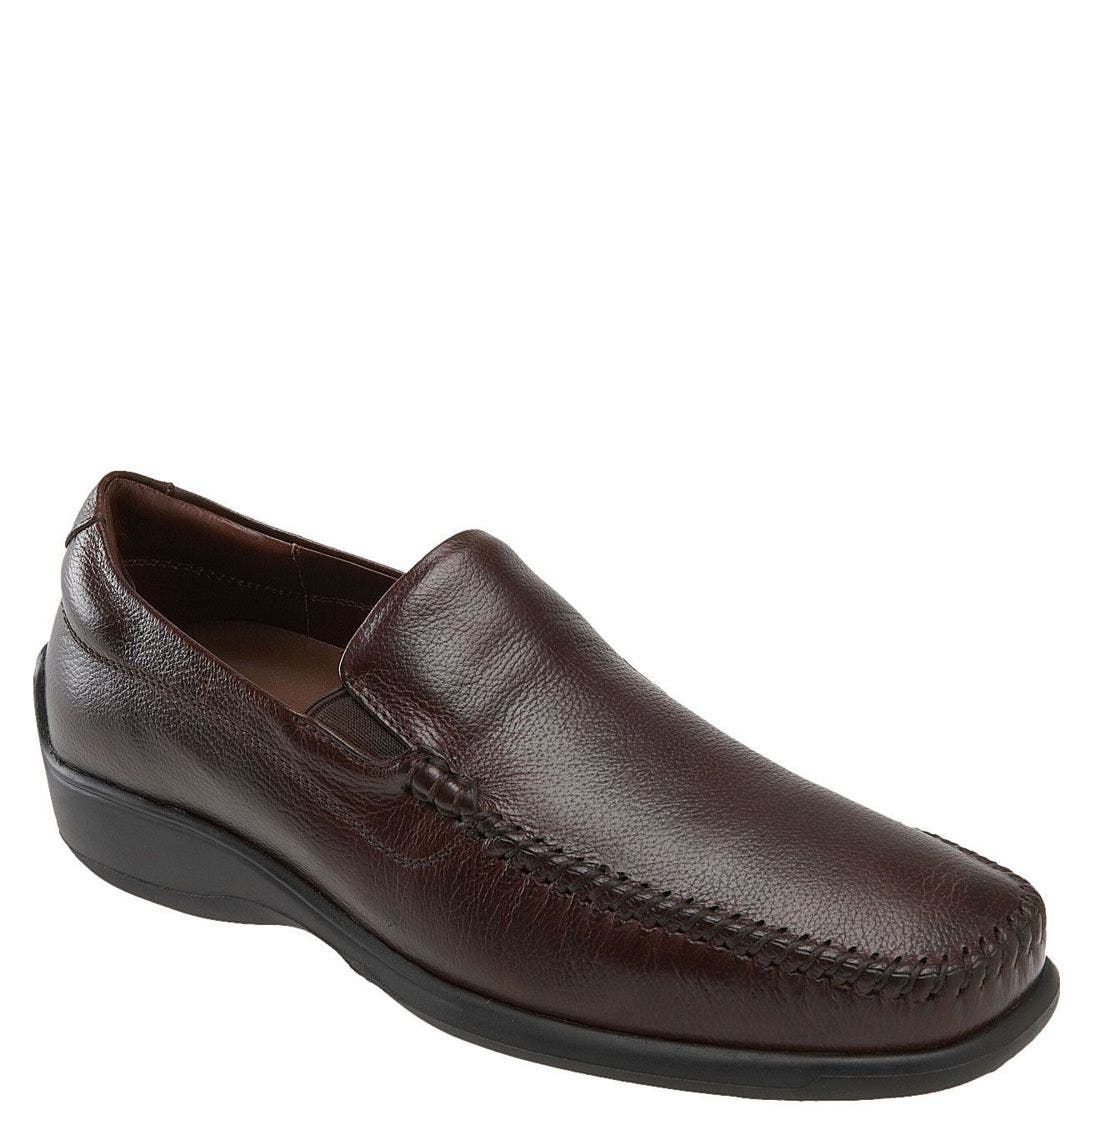 'Rome' Loafer,                             Main thumbnail 1, color,                             WALNUT